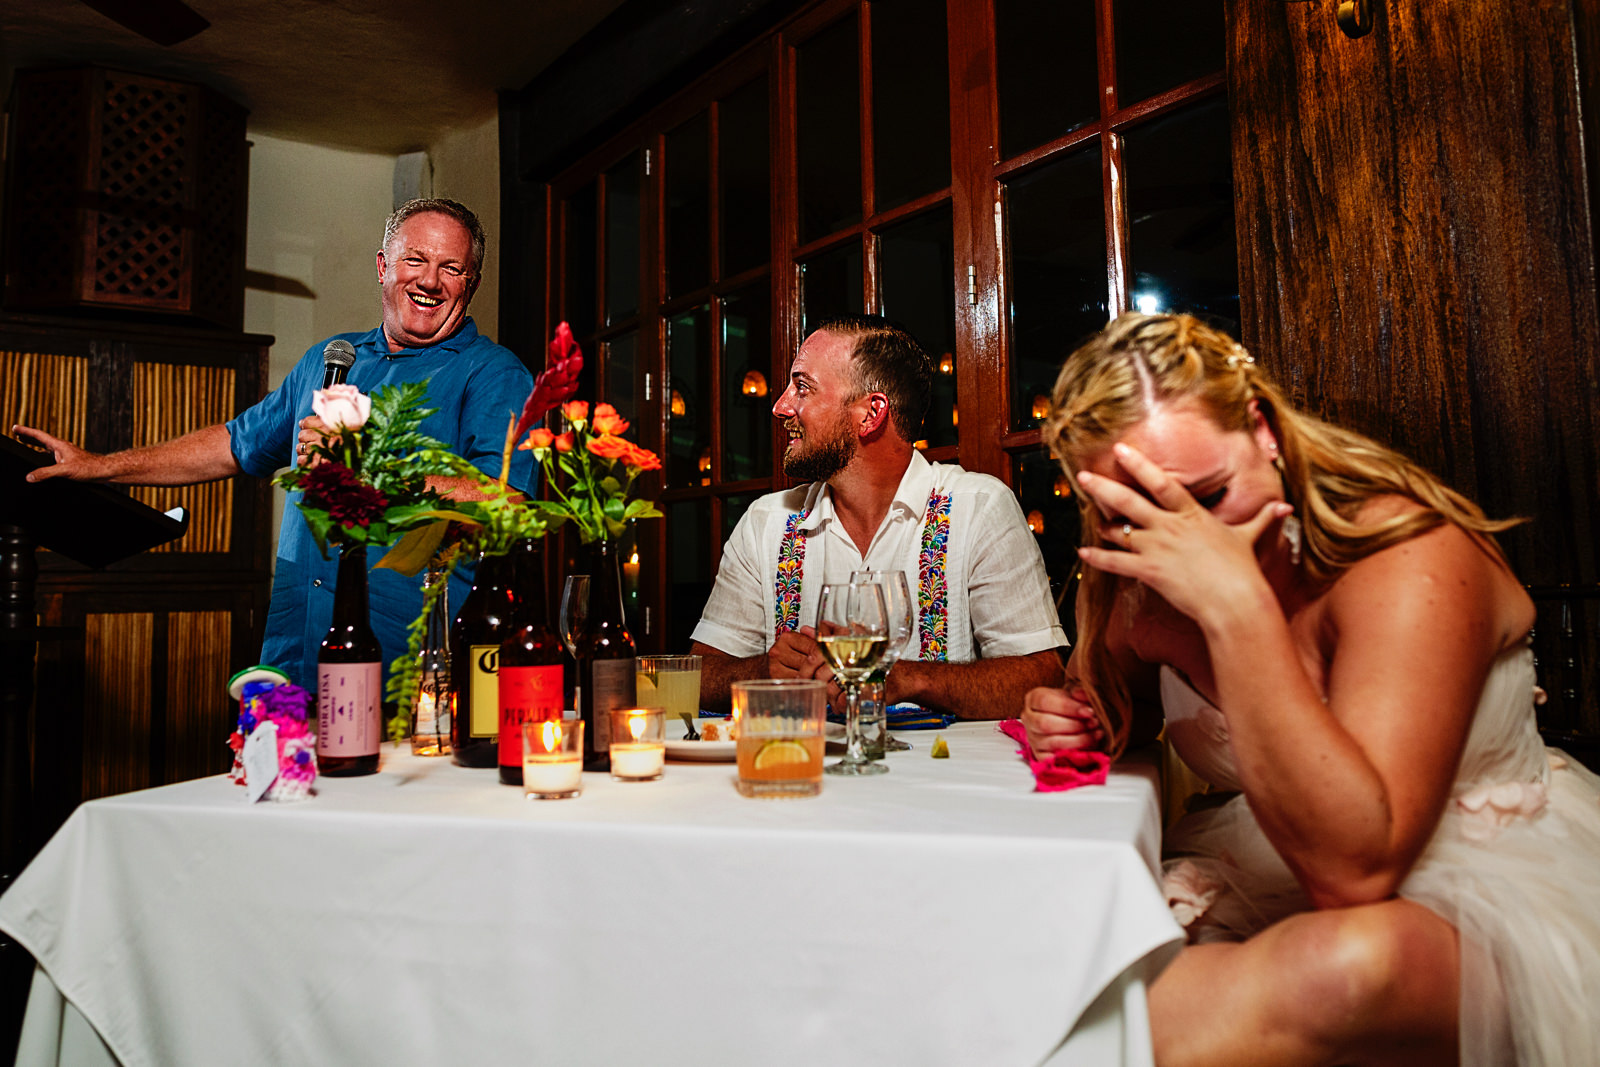 bride-embarrassed-dad-speech-wedding-reception-dinner.jpg